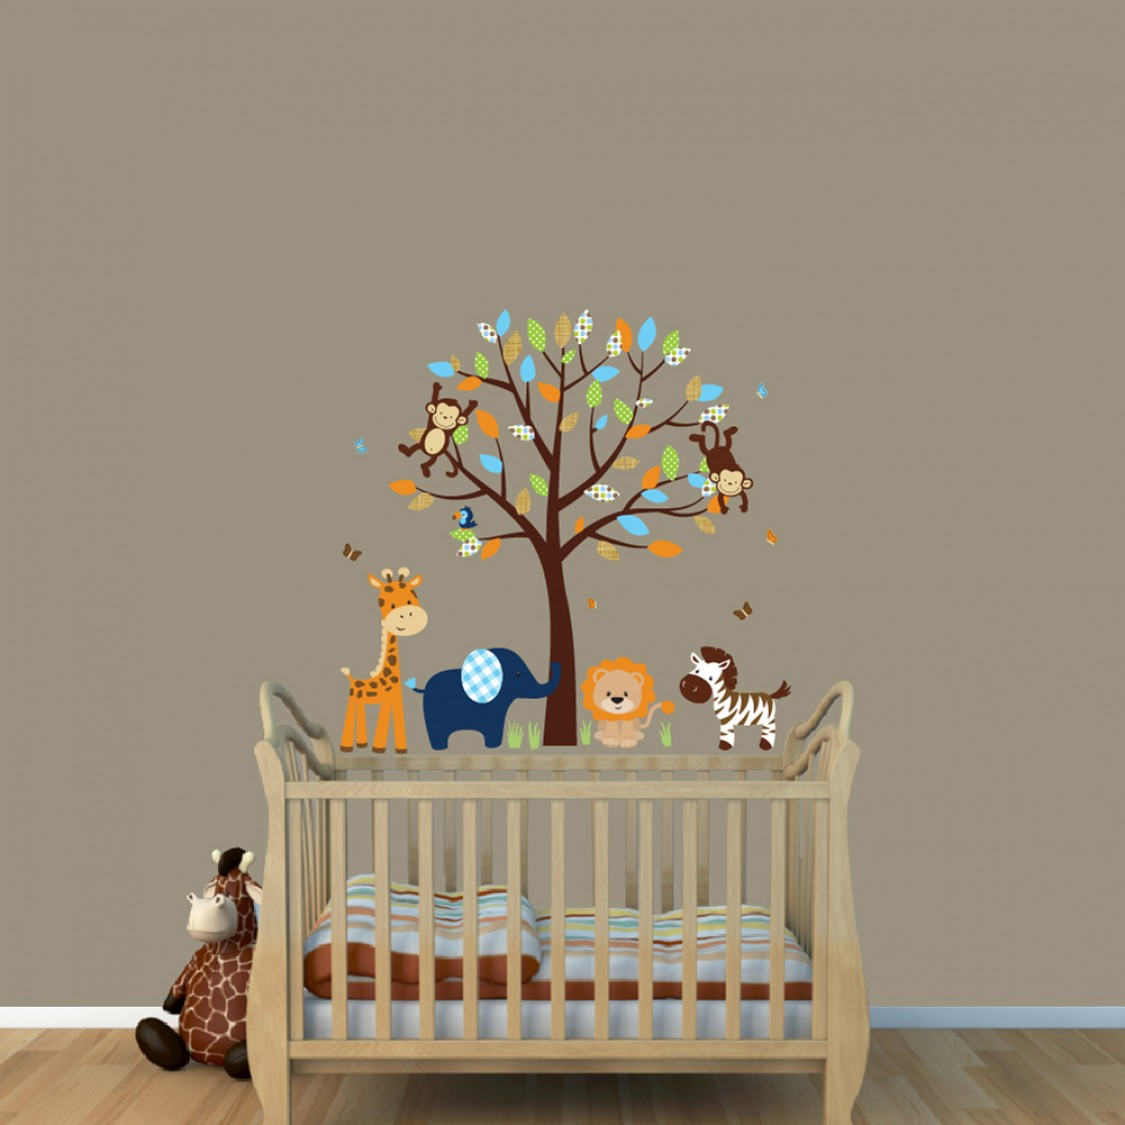 Blue Safari Nursery Wall Decals With Zebra Wall Decor For Childrens Playroom